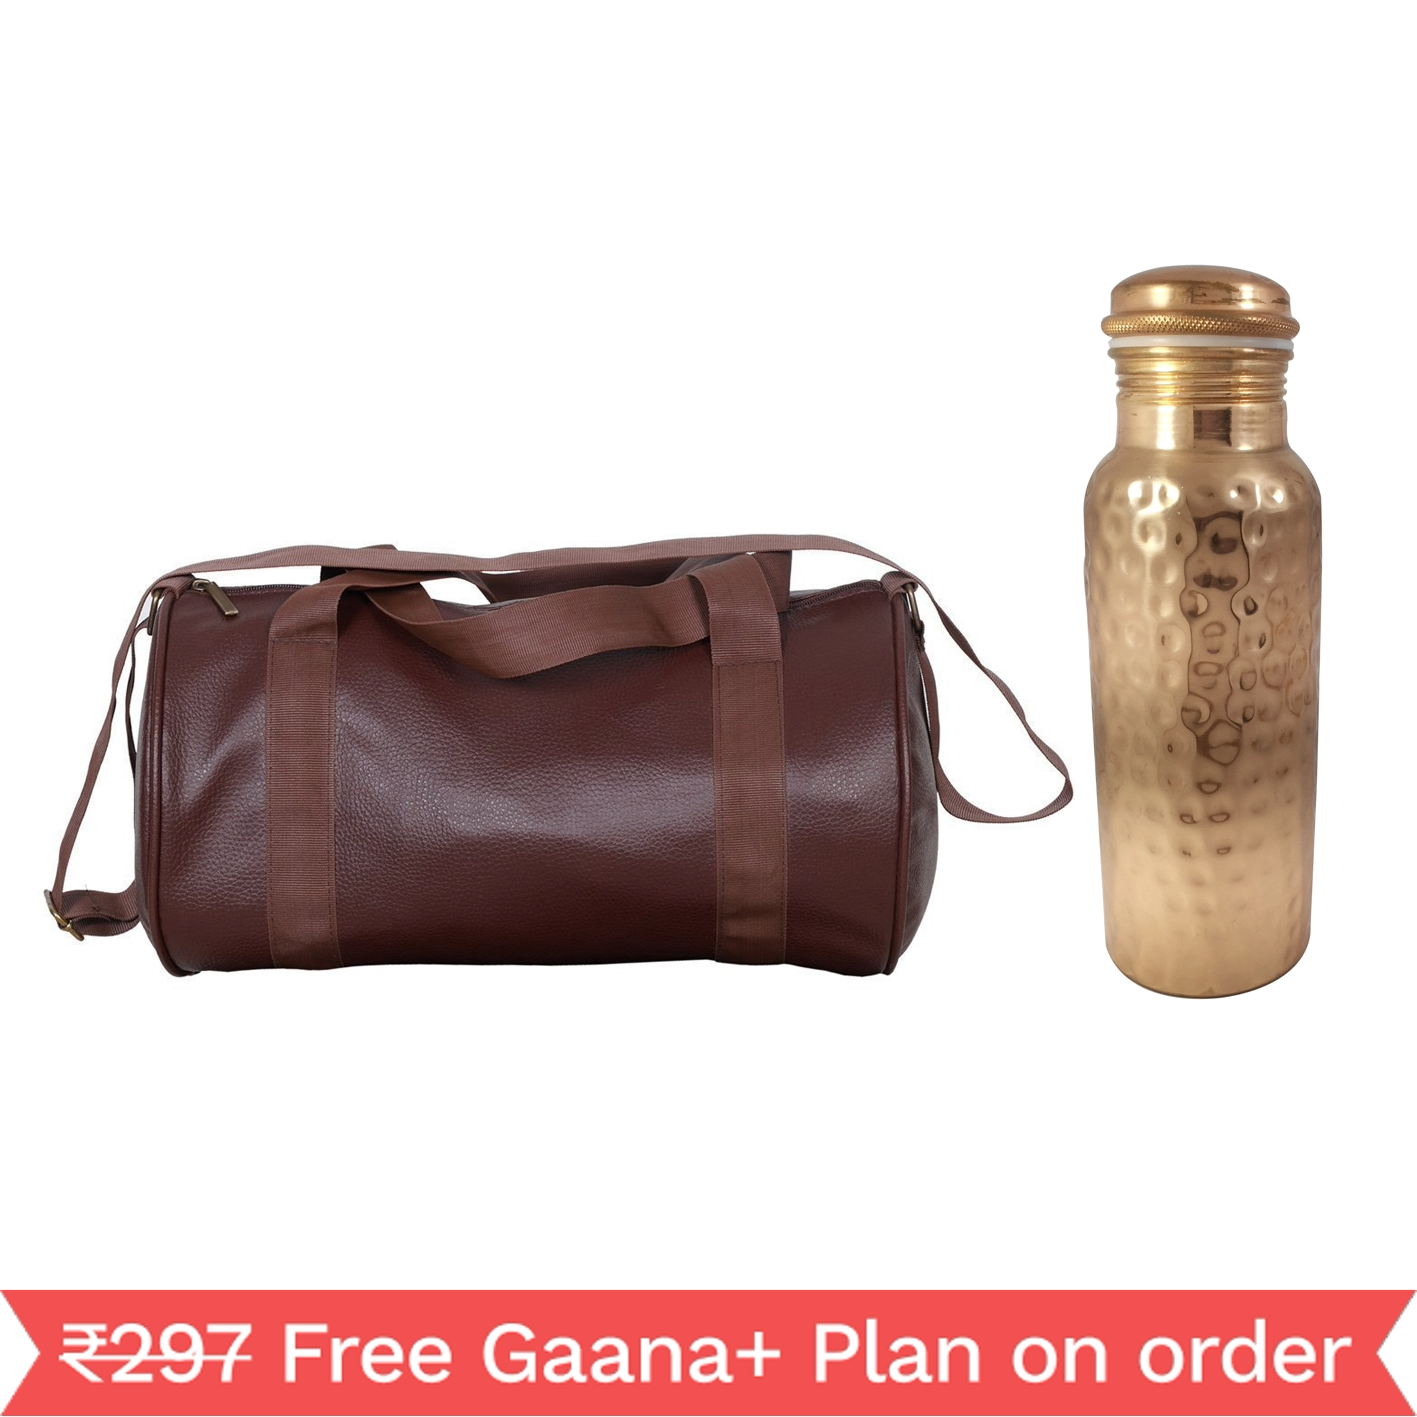 1 Copper 1000ml bottle & 1 Gym Bag - Diamond  1000 GymBag Coffe